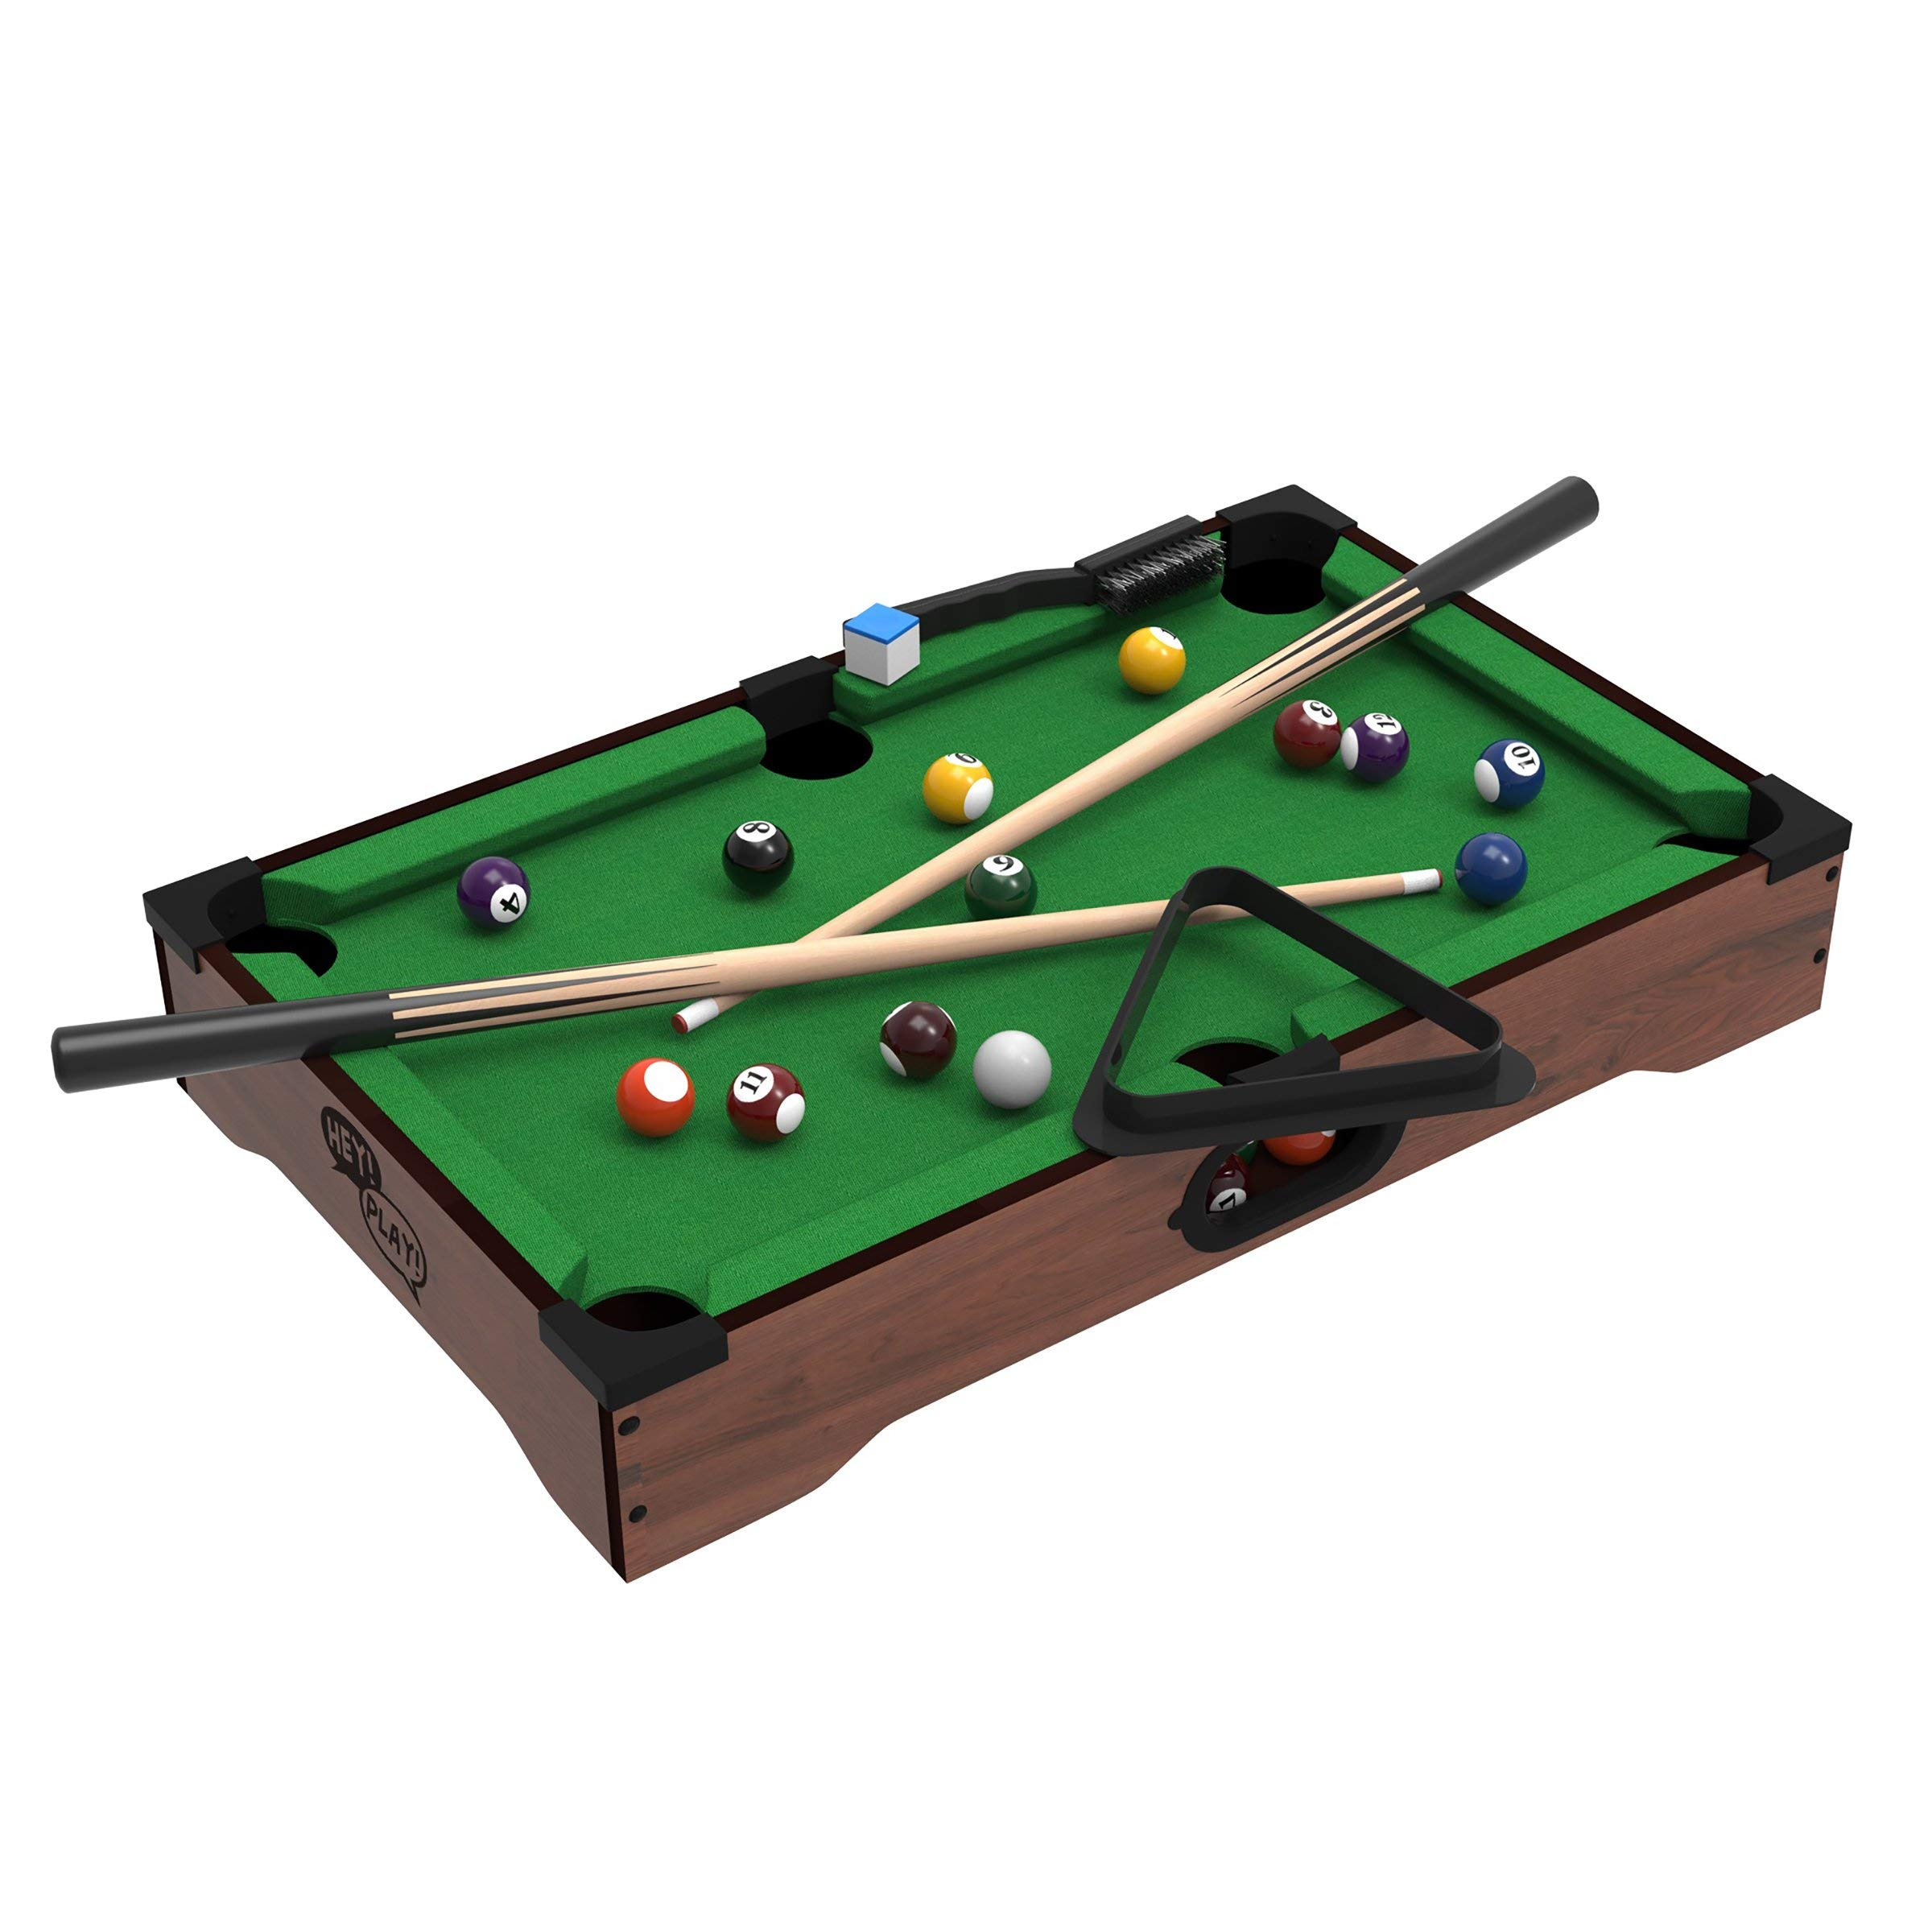 Mini Tabletop Pool Set- Billiards Game Includes Game Balls, Sticks, Chalk, Brush and Triangle-Portable and Fun for the Whole Family by Hey! Play! (Renewed) by Trademark